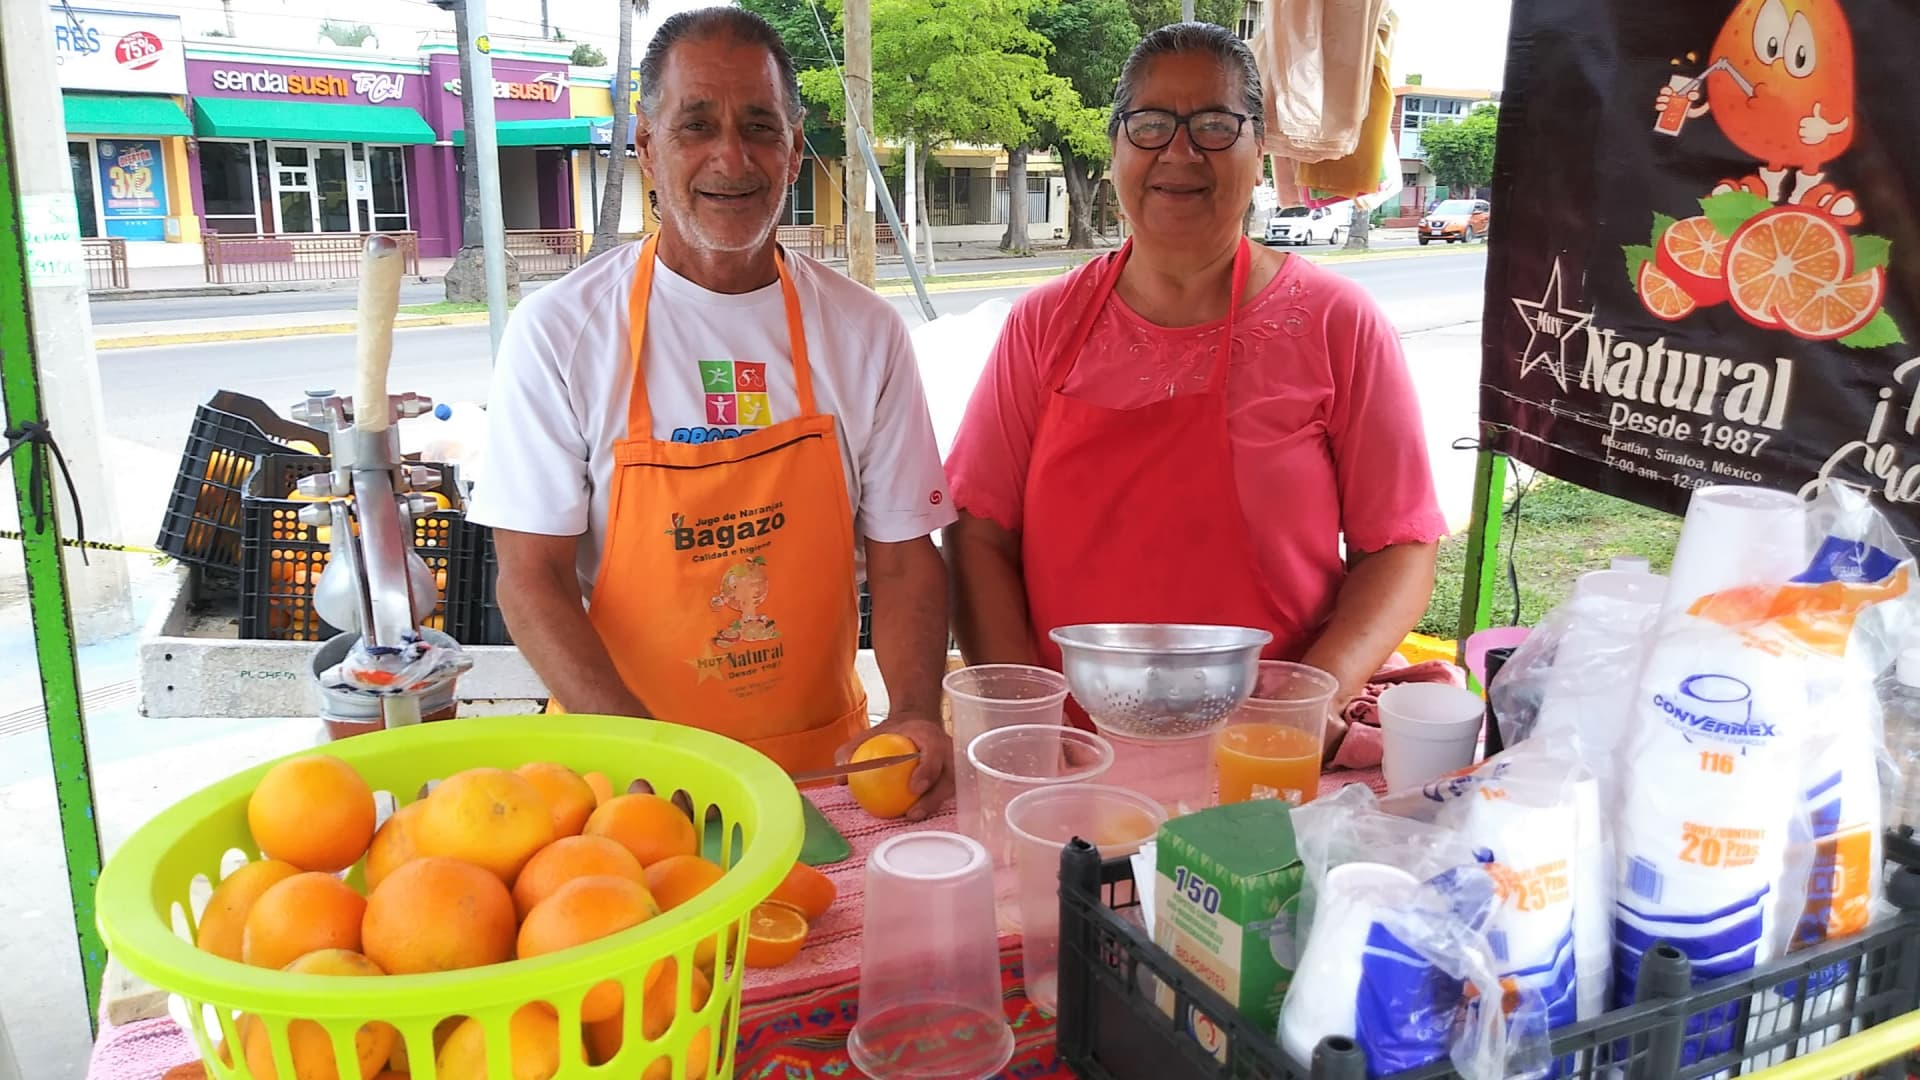 For 45 years, Maria Guadalupe and Antonio have been squeezing and selling fresh orange juice from their stand on this corner.